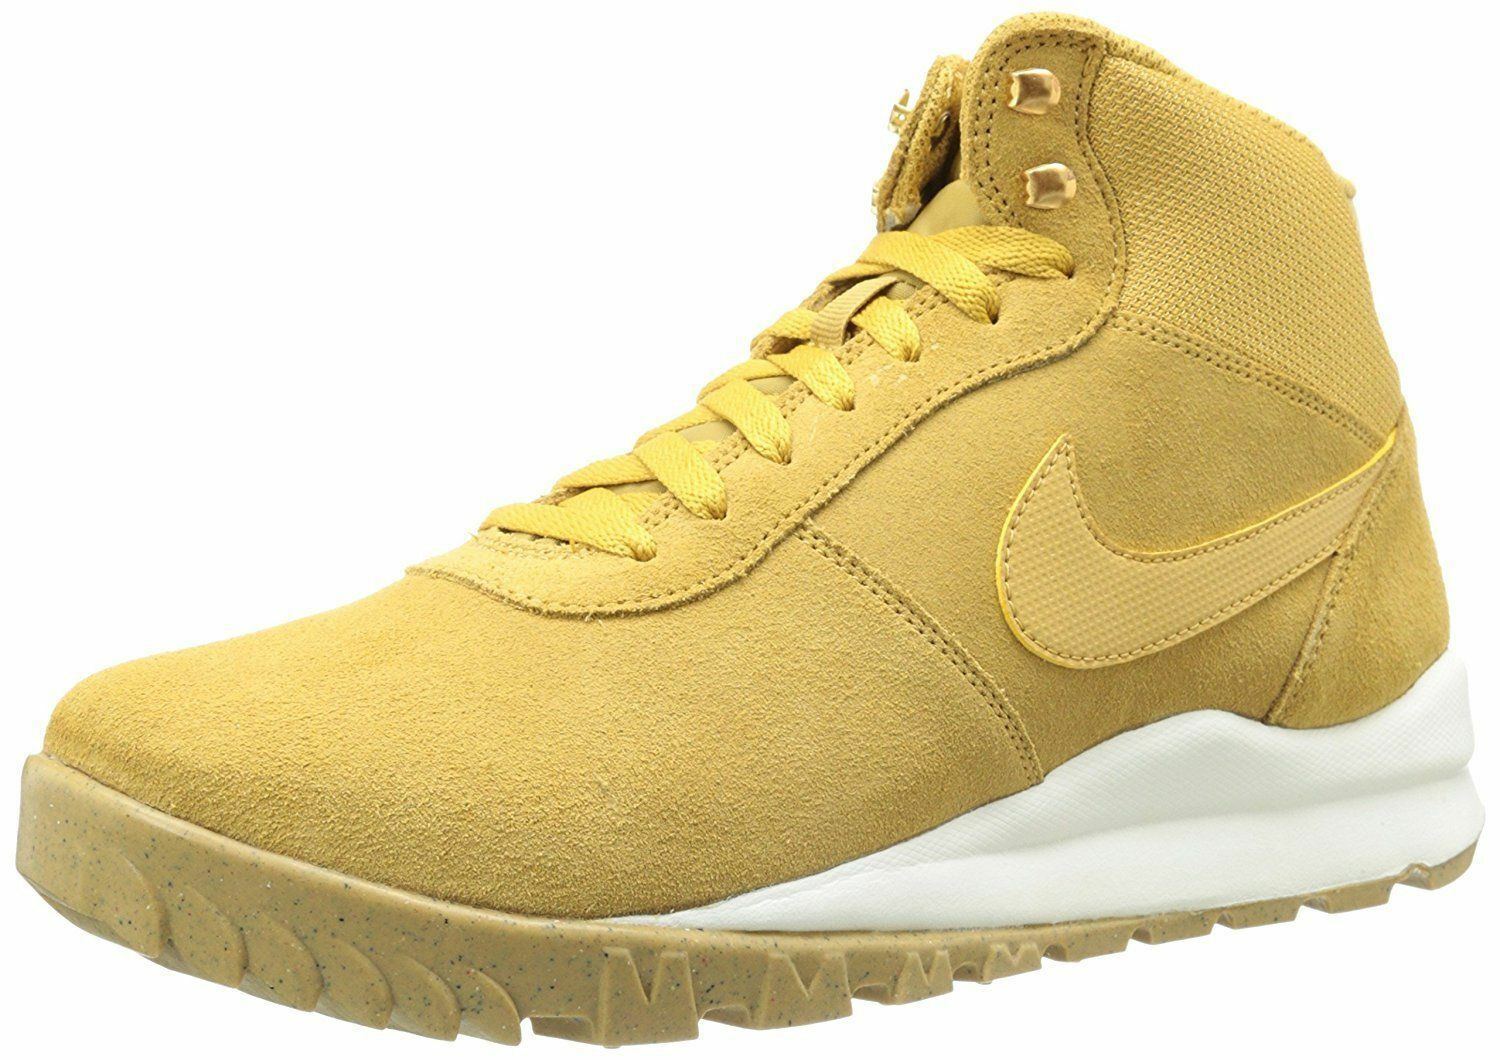 Nike Hoodland Suede Boots Tan White